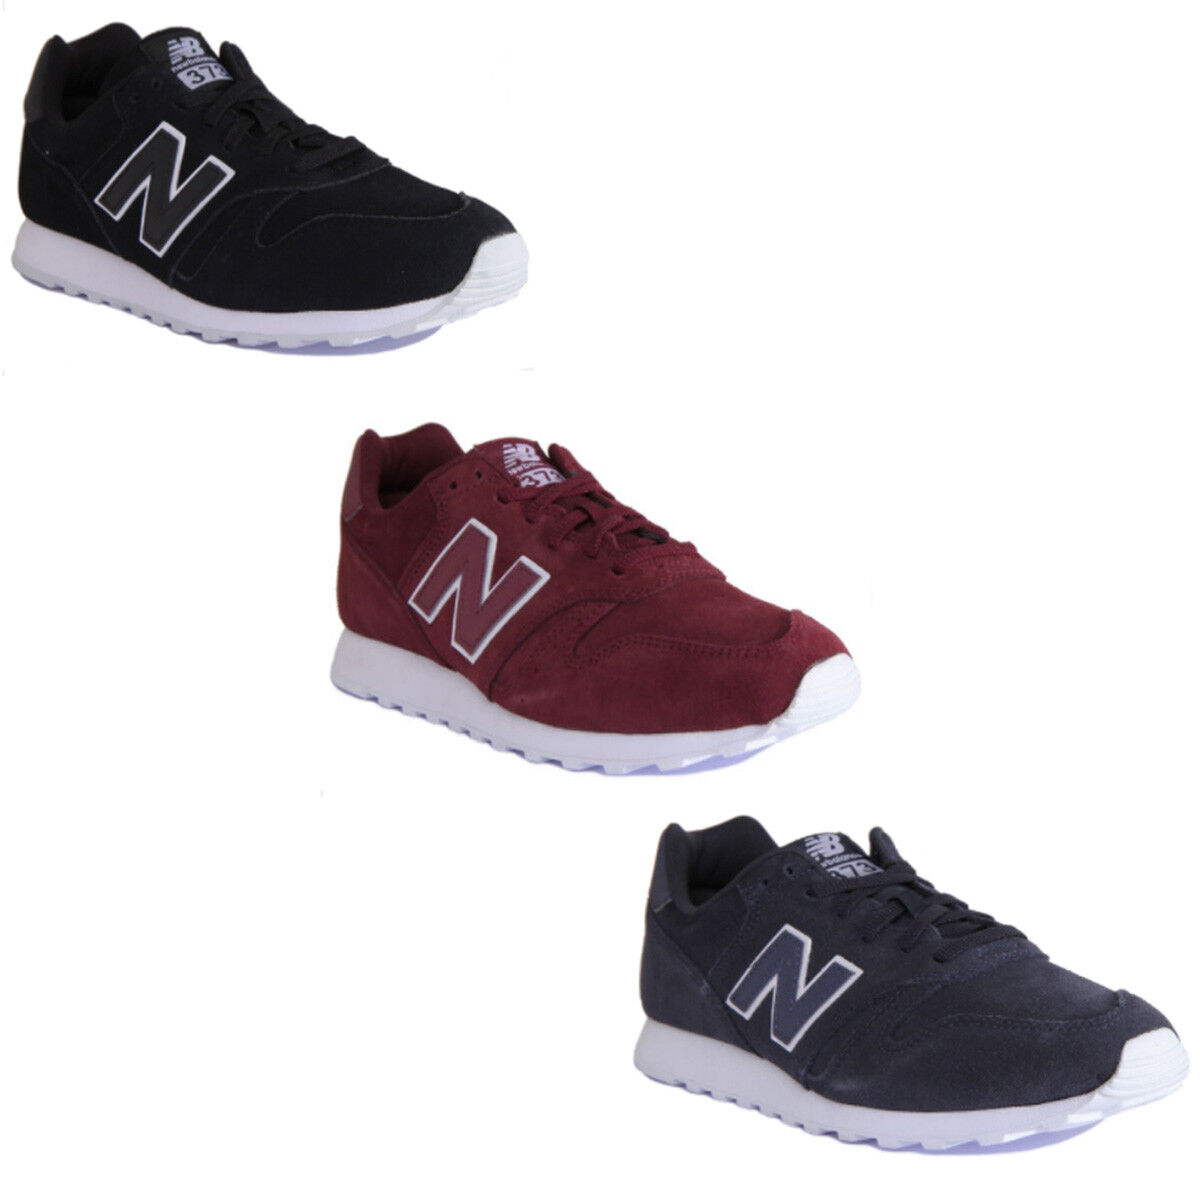 New Balance MI373TP Modern Trainers Classic Men Suede Leather Burgundy Trainers Modern 7-12.5 a5b5d0